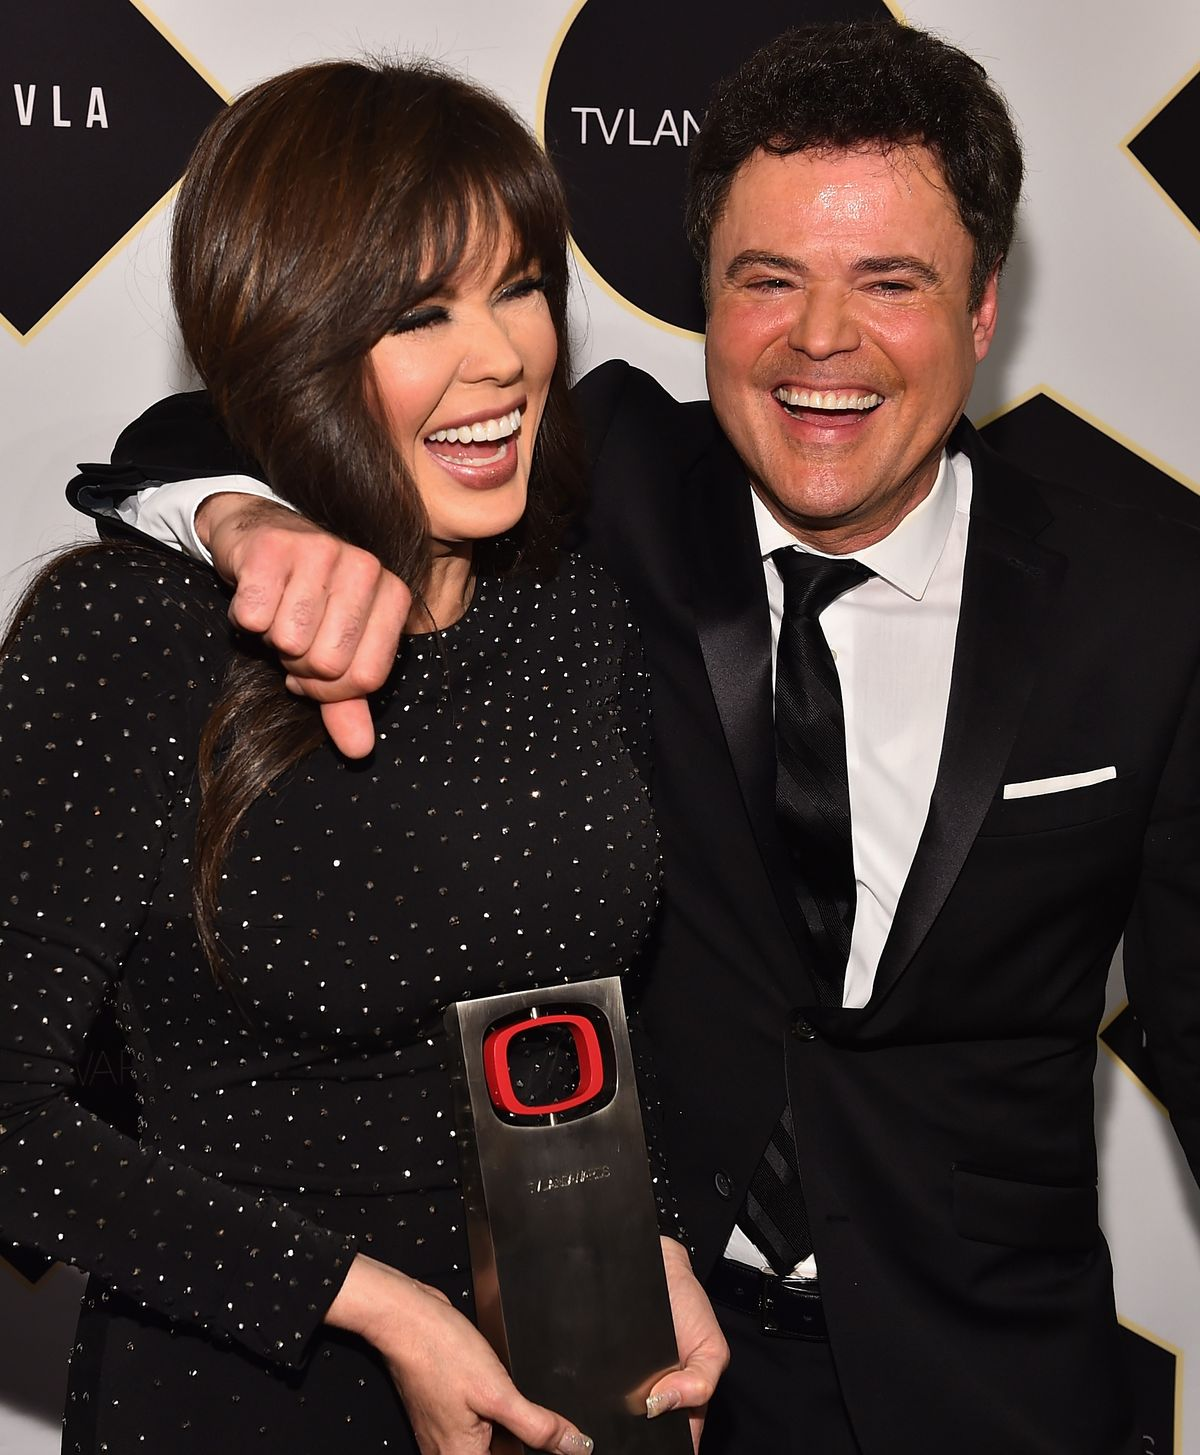 Singers Marie Osmond and Donny Osmond pose backstage with the Pop Culture Award at the 2015 TV Land Awards at Saban Theatre on April 11, 2015 | Photo: Getty Images